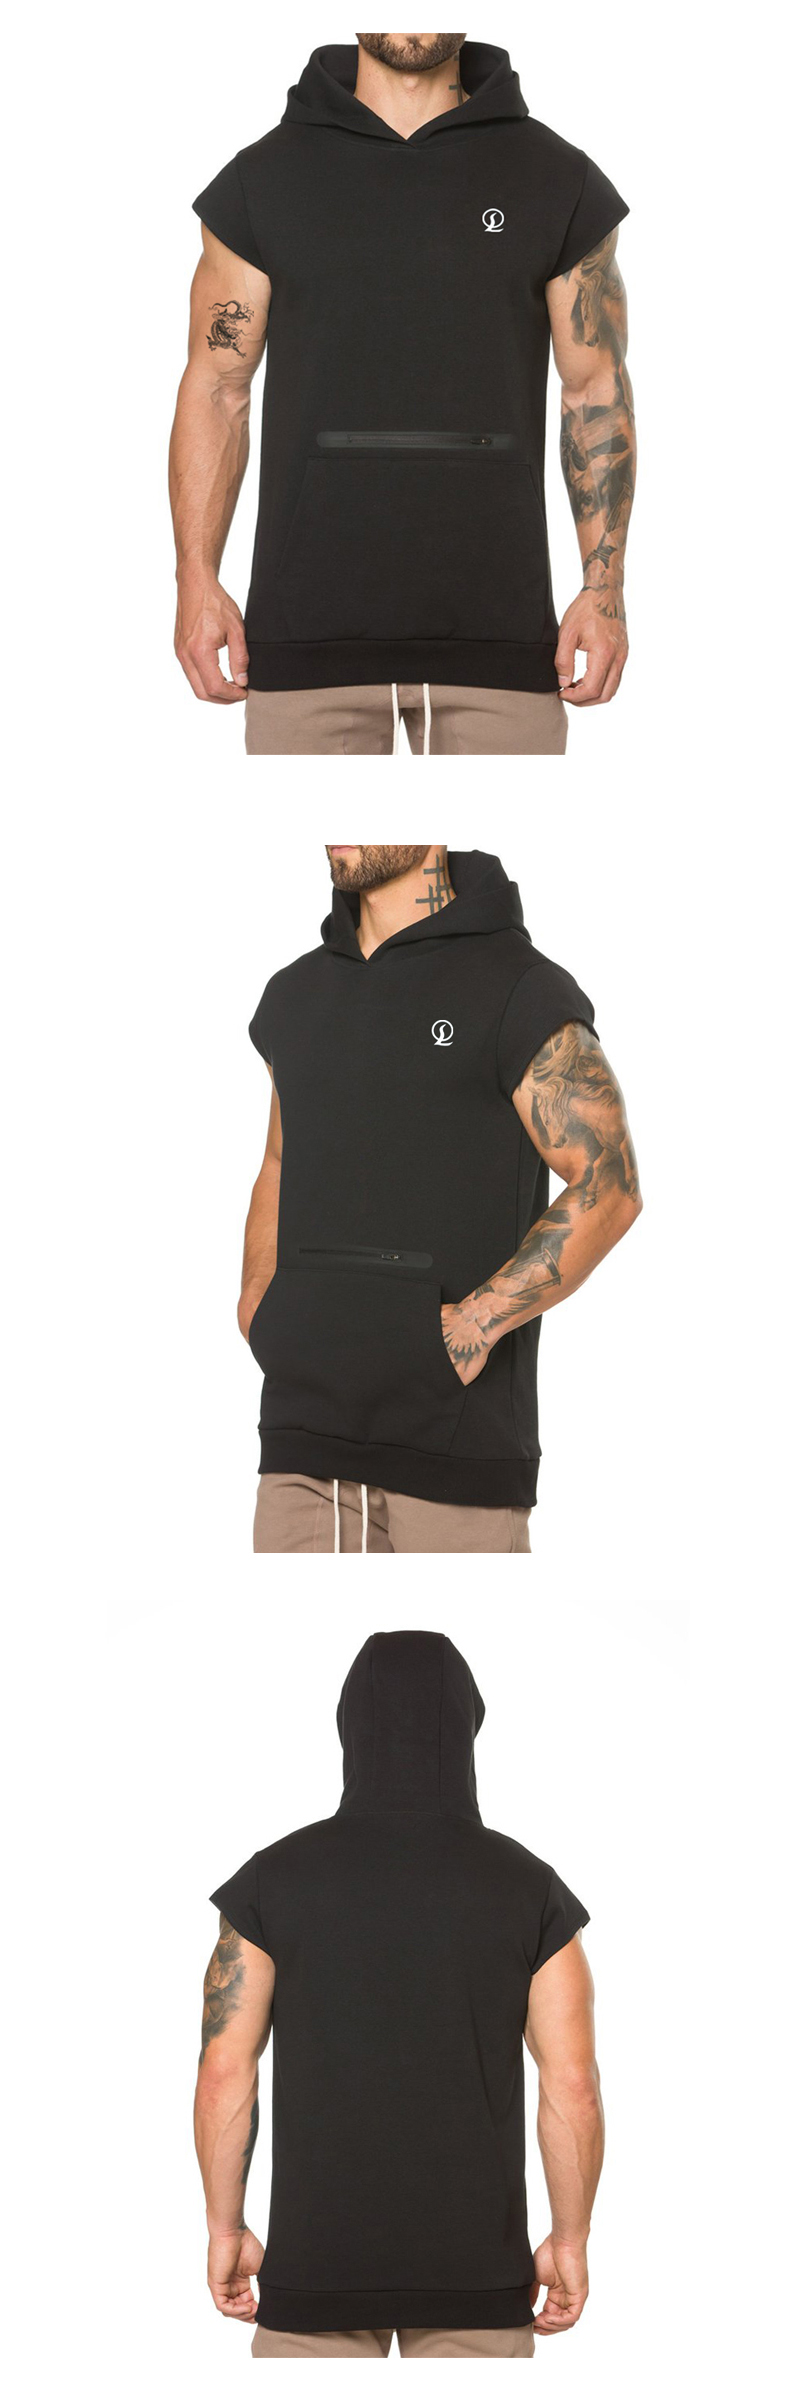 Zipper pocket sleeveless sweatshirt hoody cotton polyester hoodies with leather patches fuzzy hooded sweatshirts